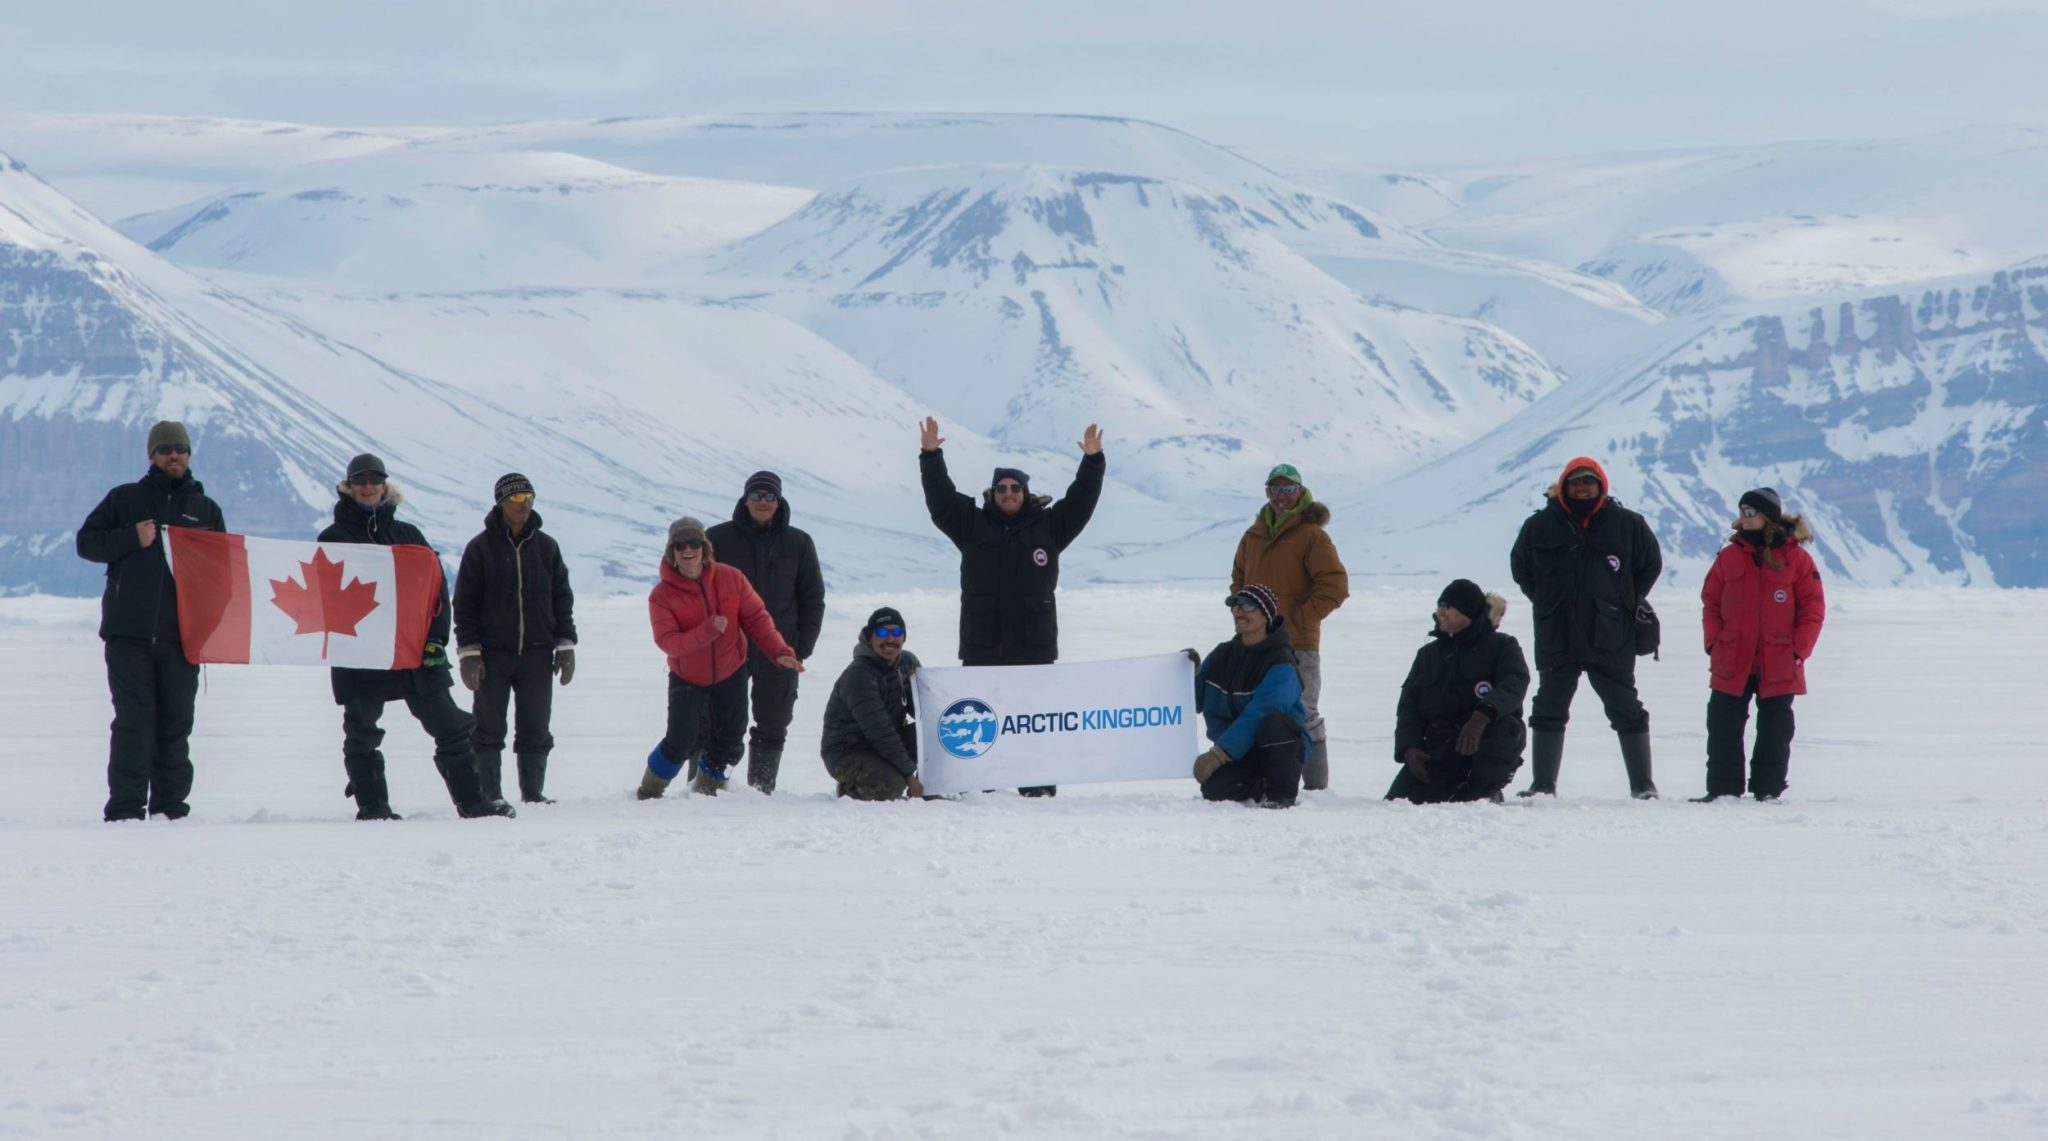 A Year in the Arctic